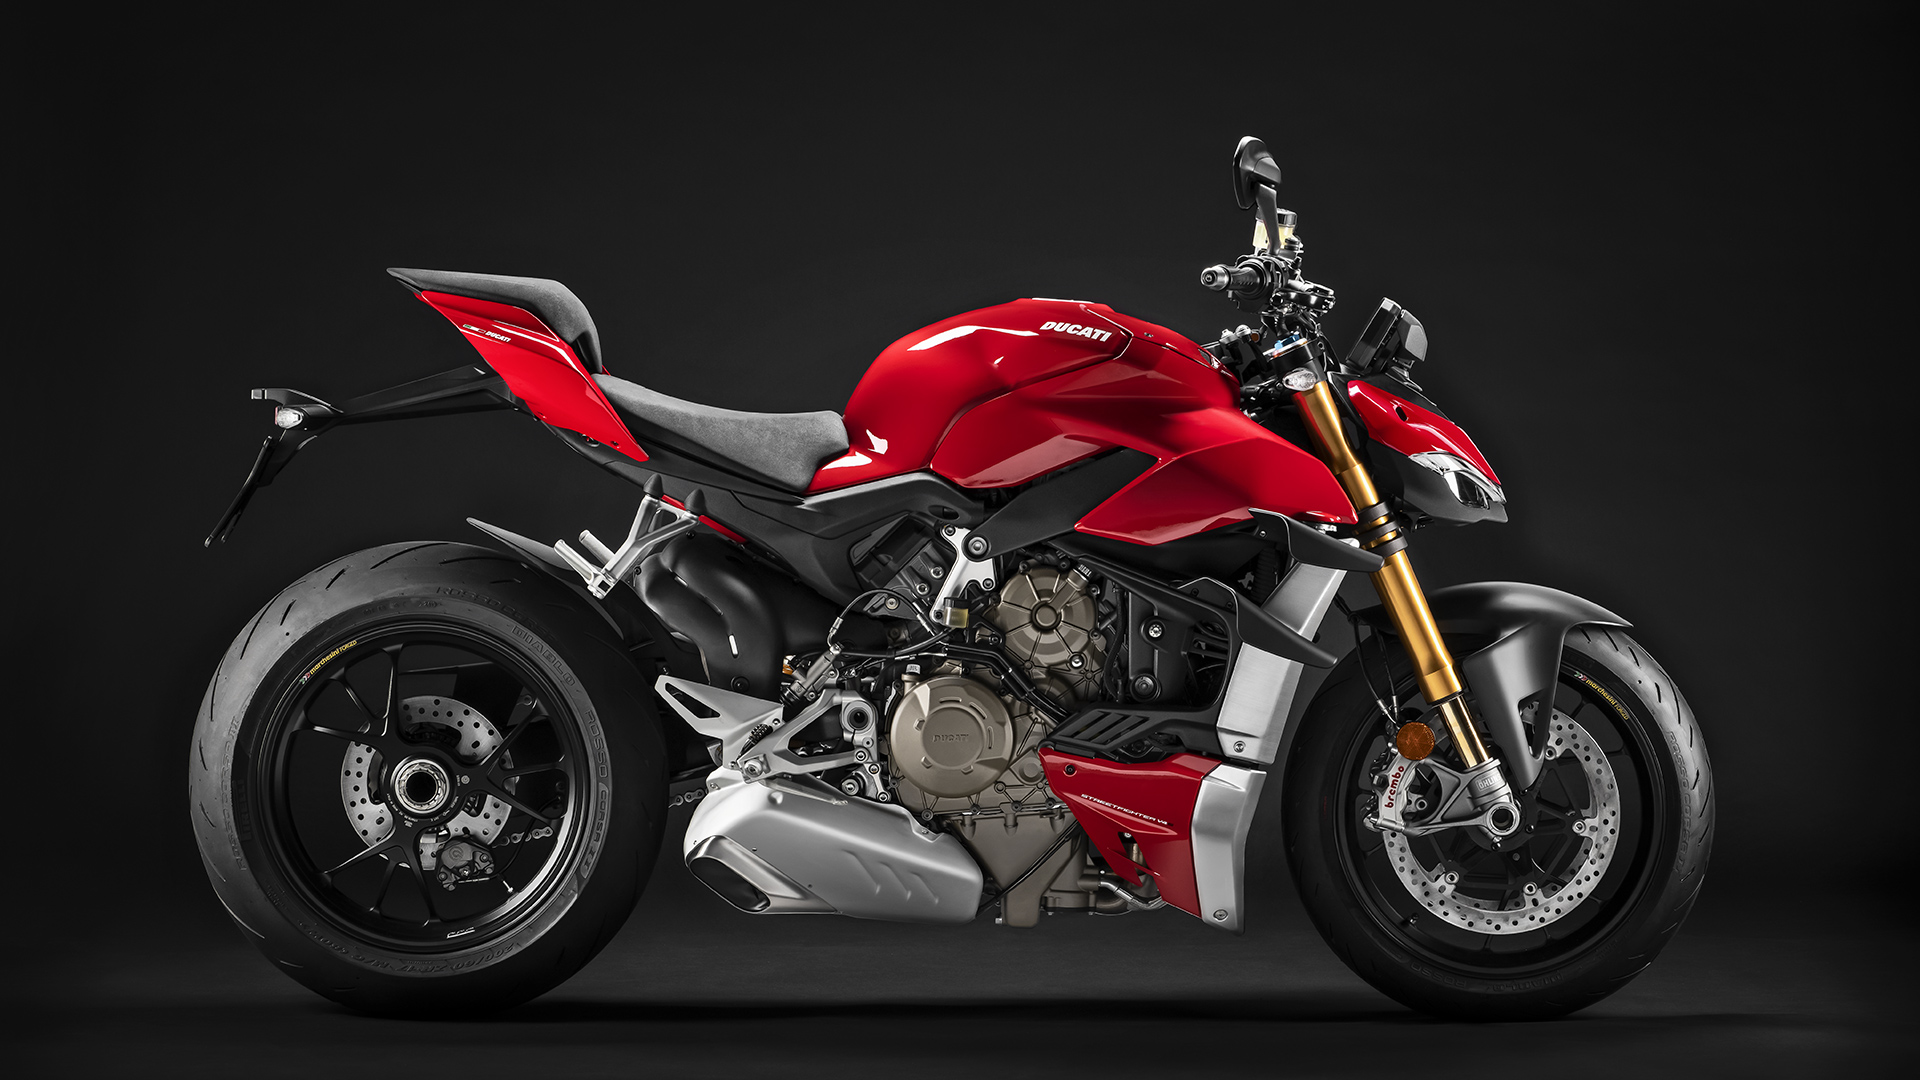 ducati streetfighter wiring diagram new streetfighter v4  2020  the fight formula ducati  new streetfighter v4  2020  the fight